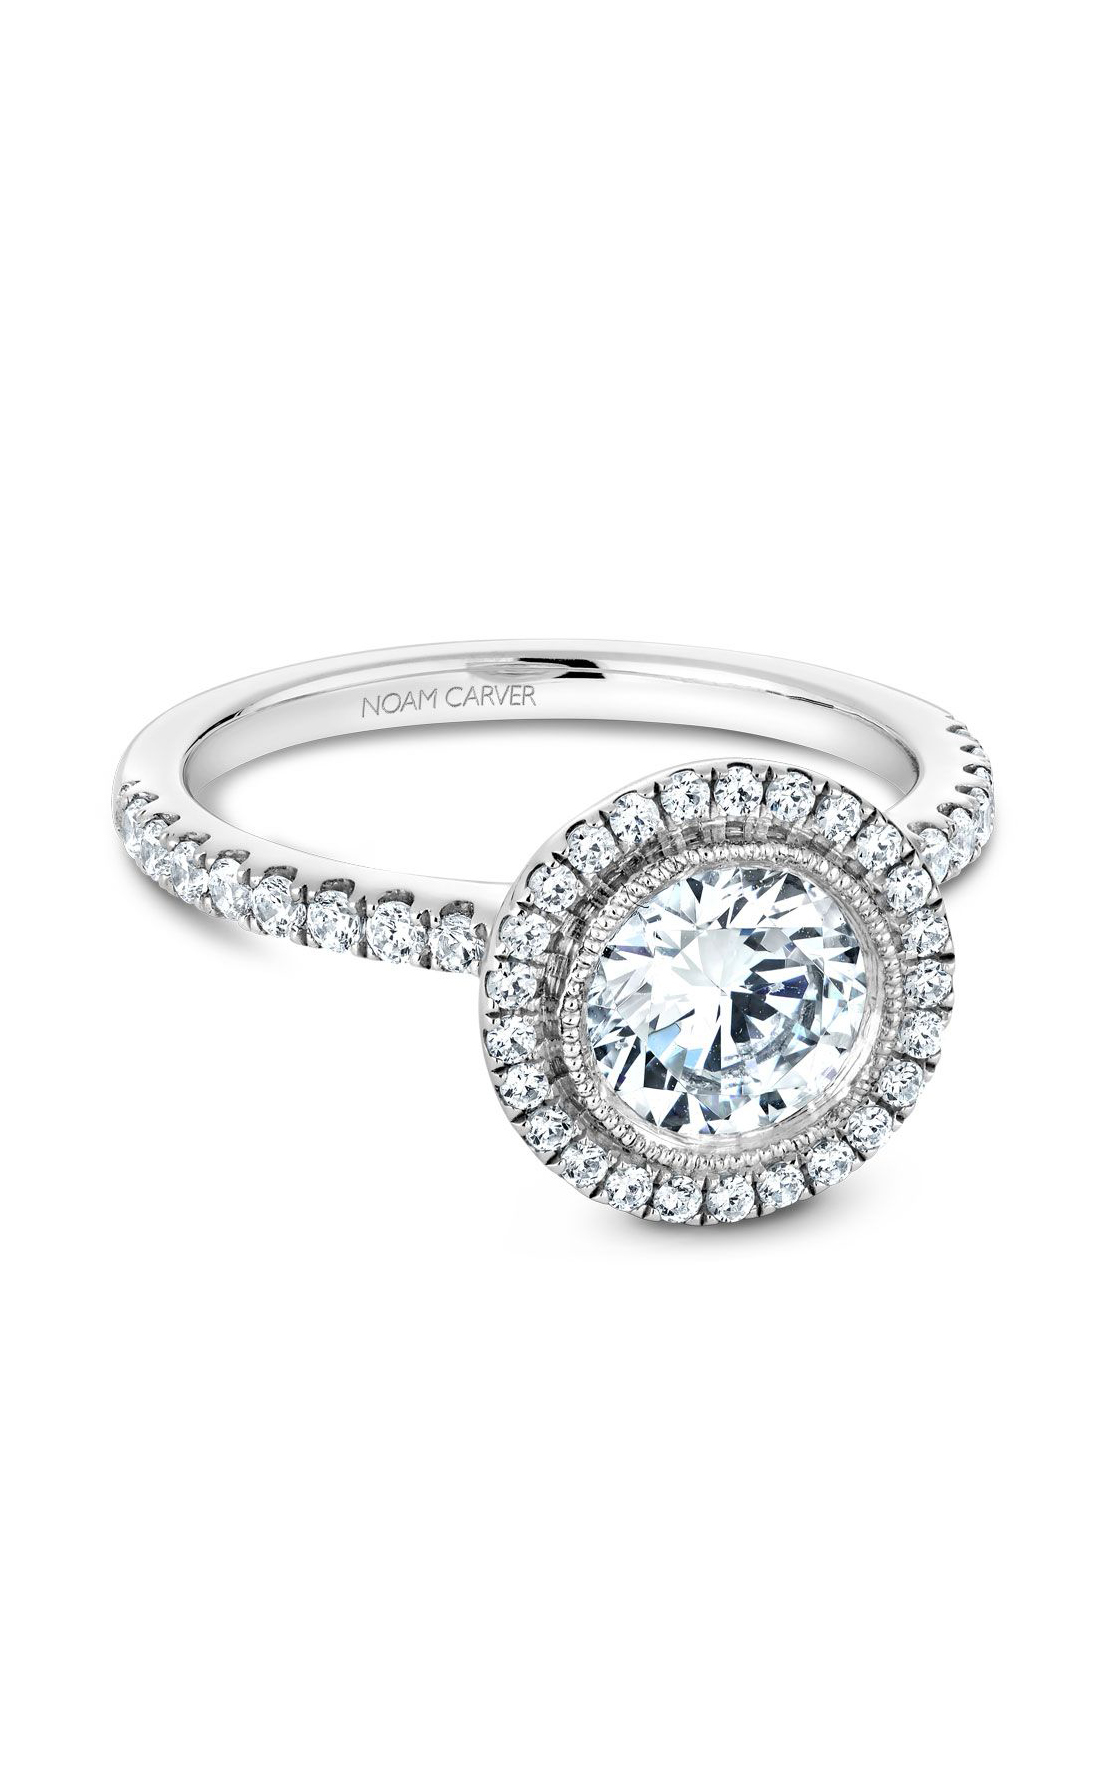 Noam Carver Halo Engagement Ring B142-15WM product image